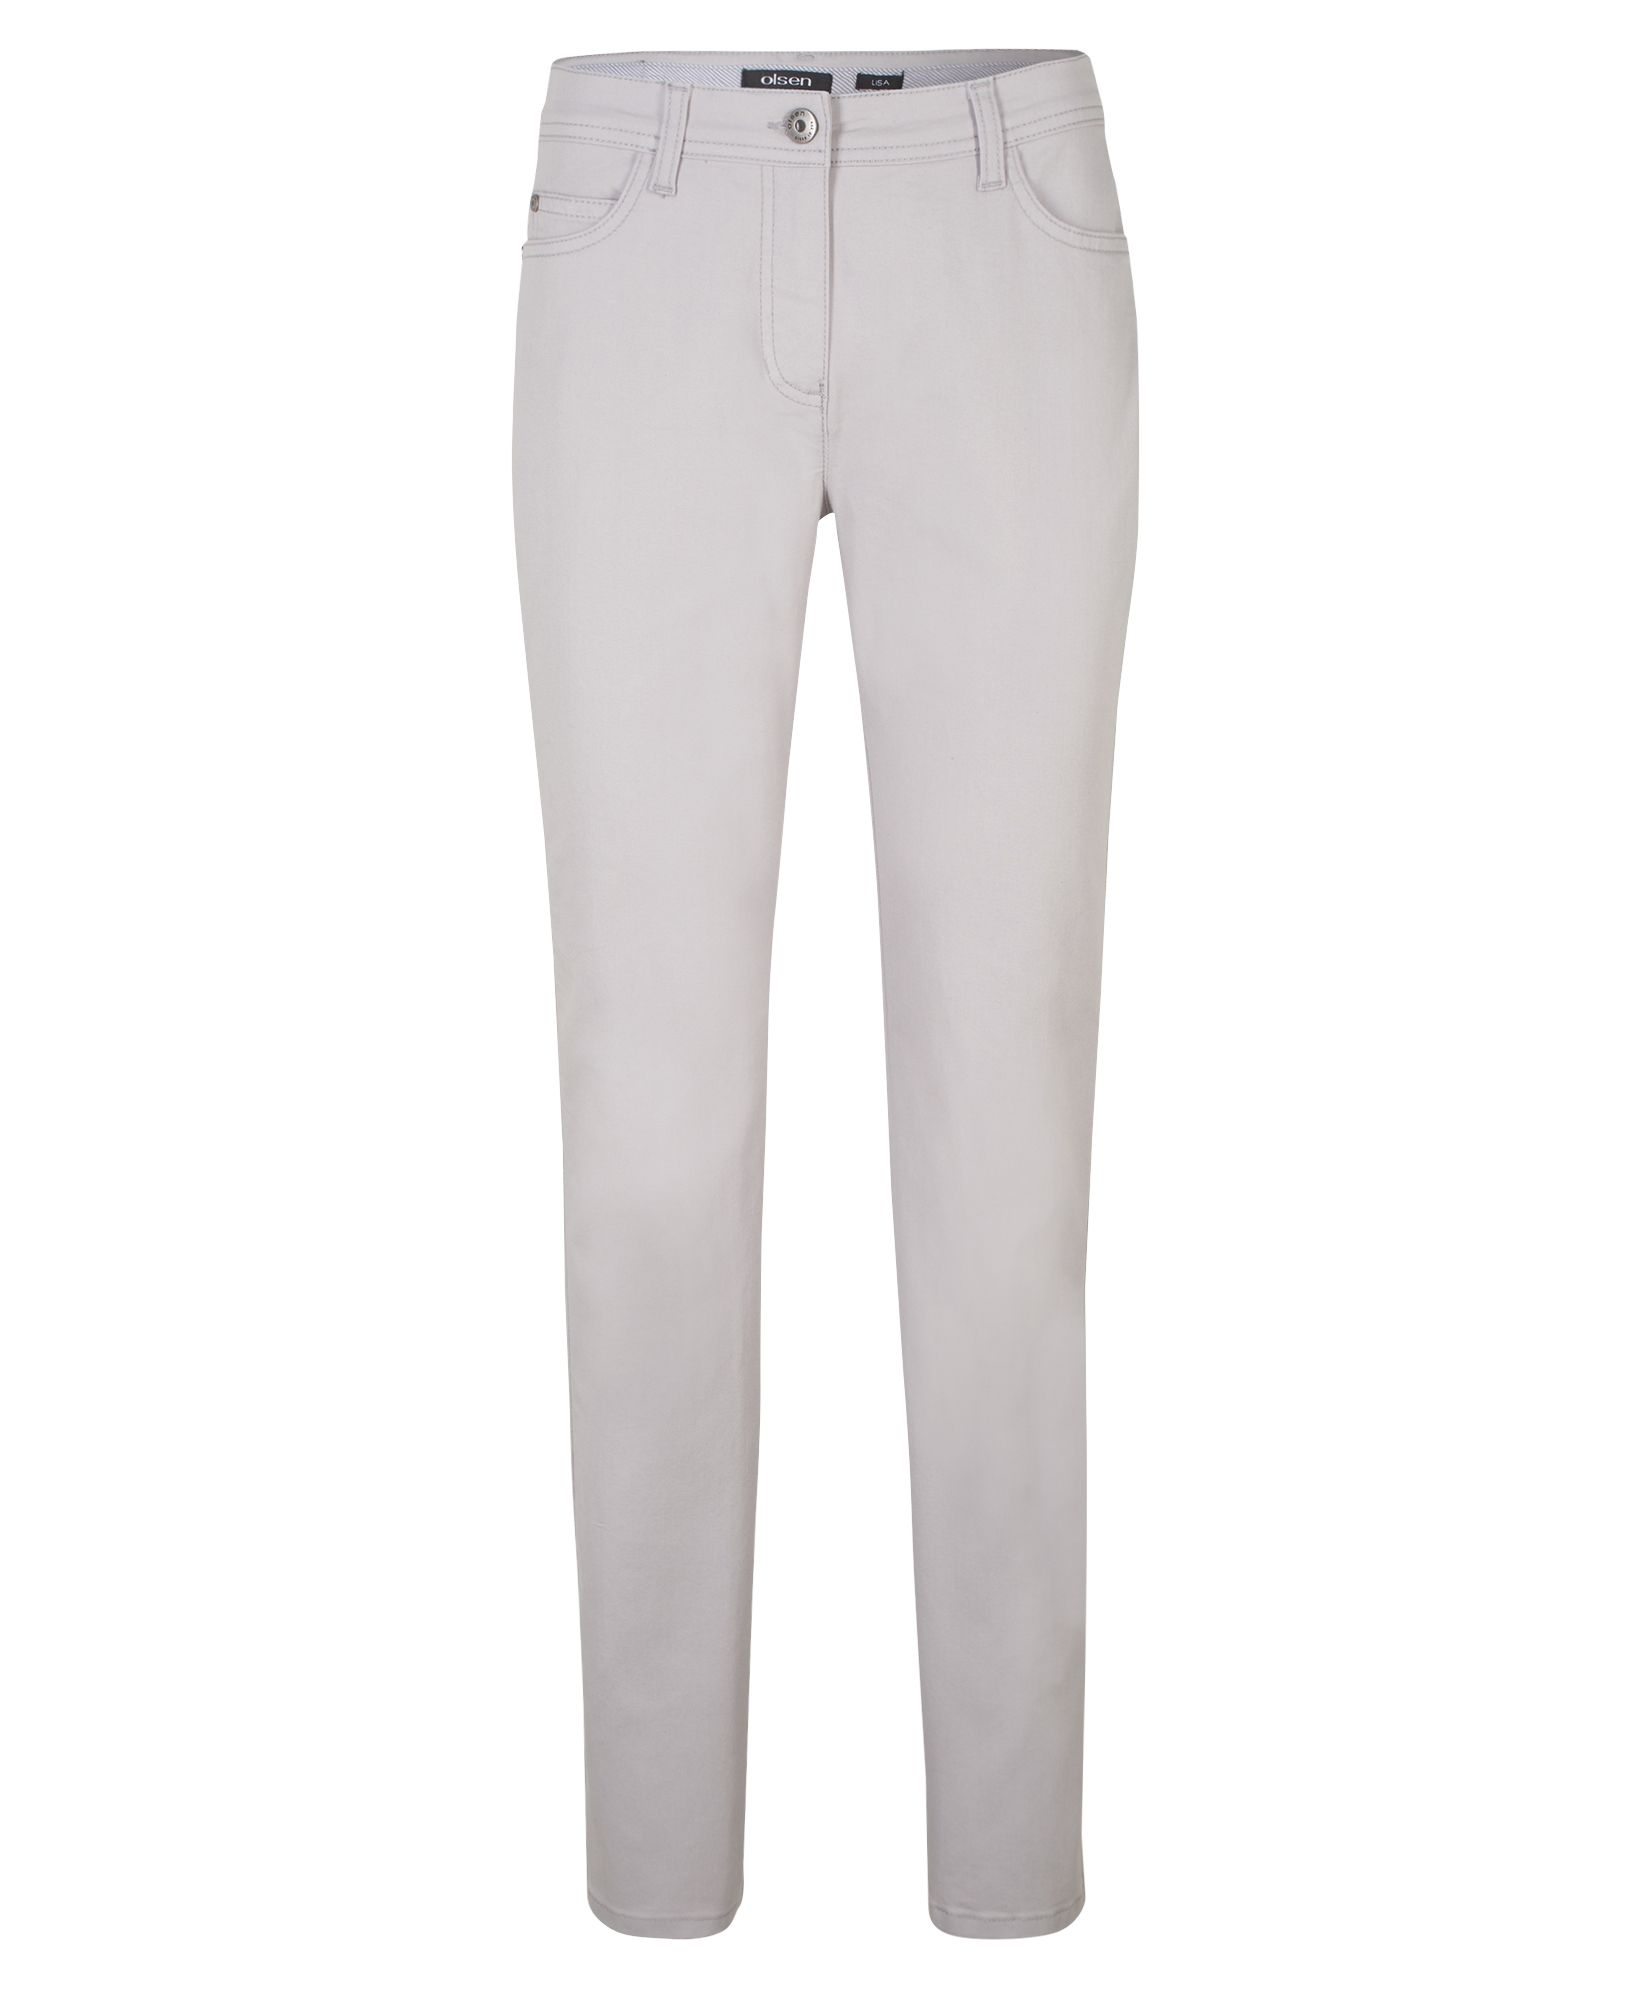 Olsen Power Stretch Jeans Lisa Straight, Silver Marl